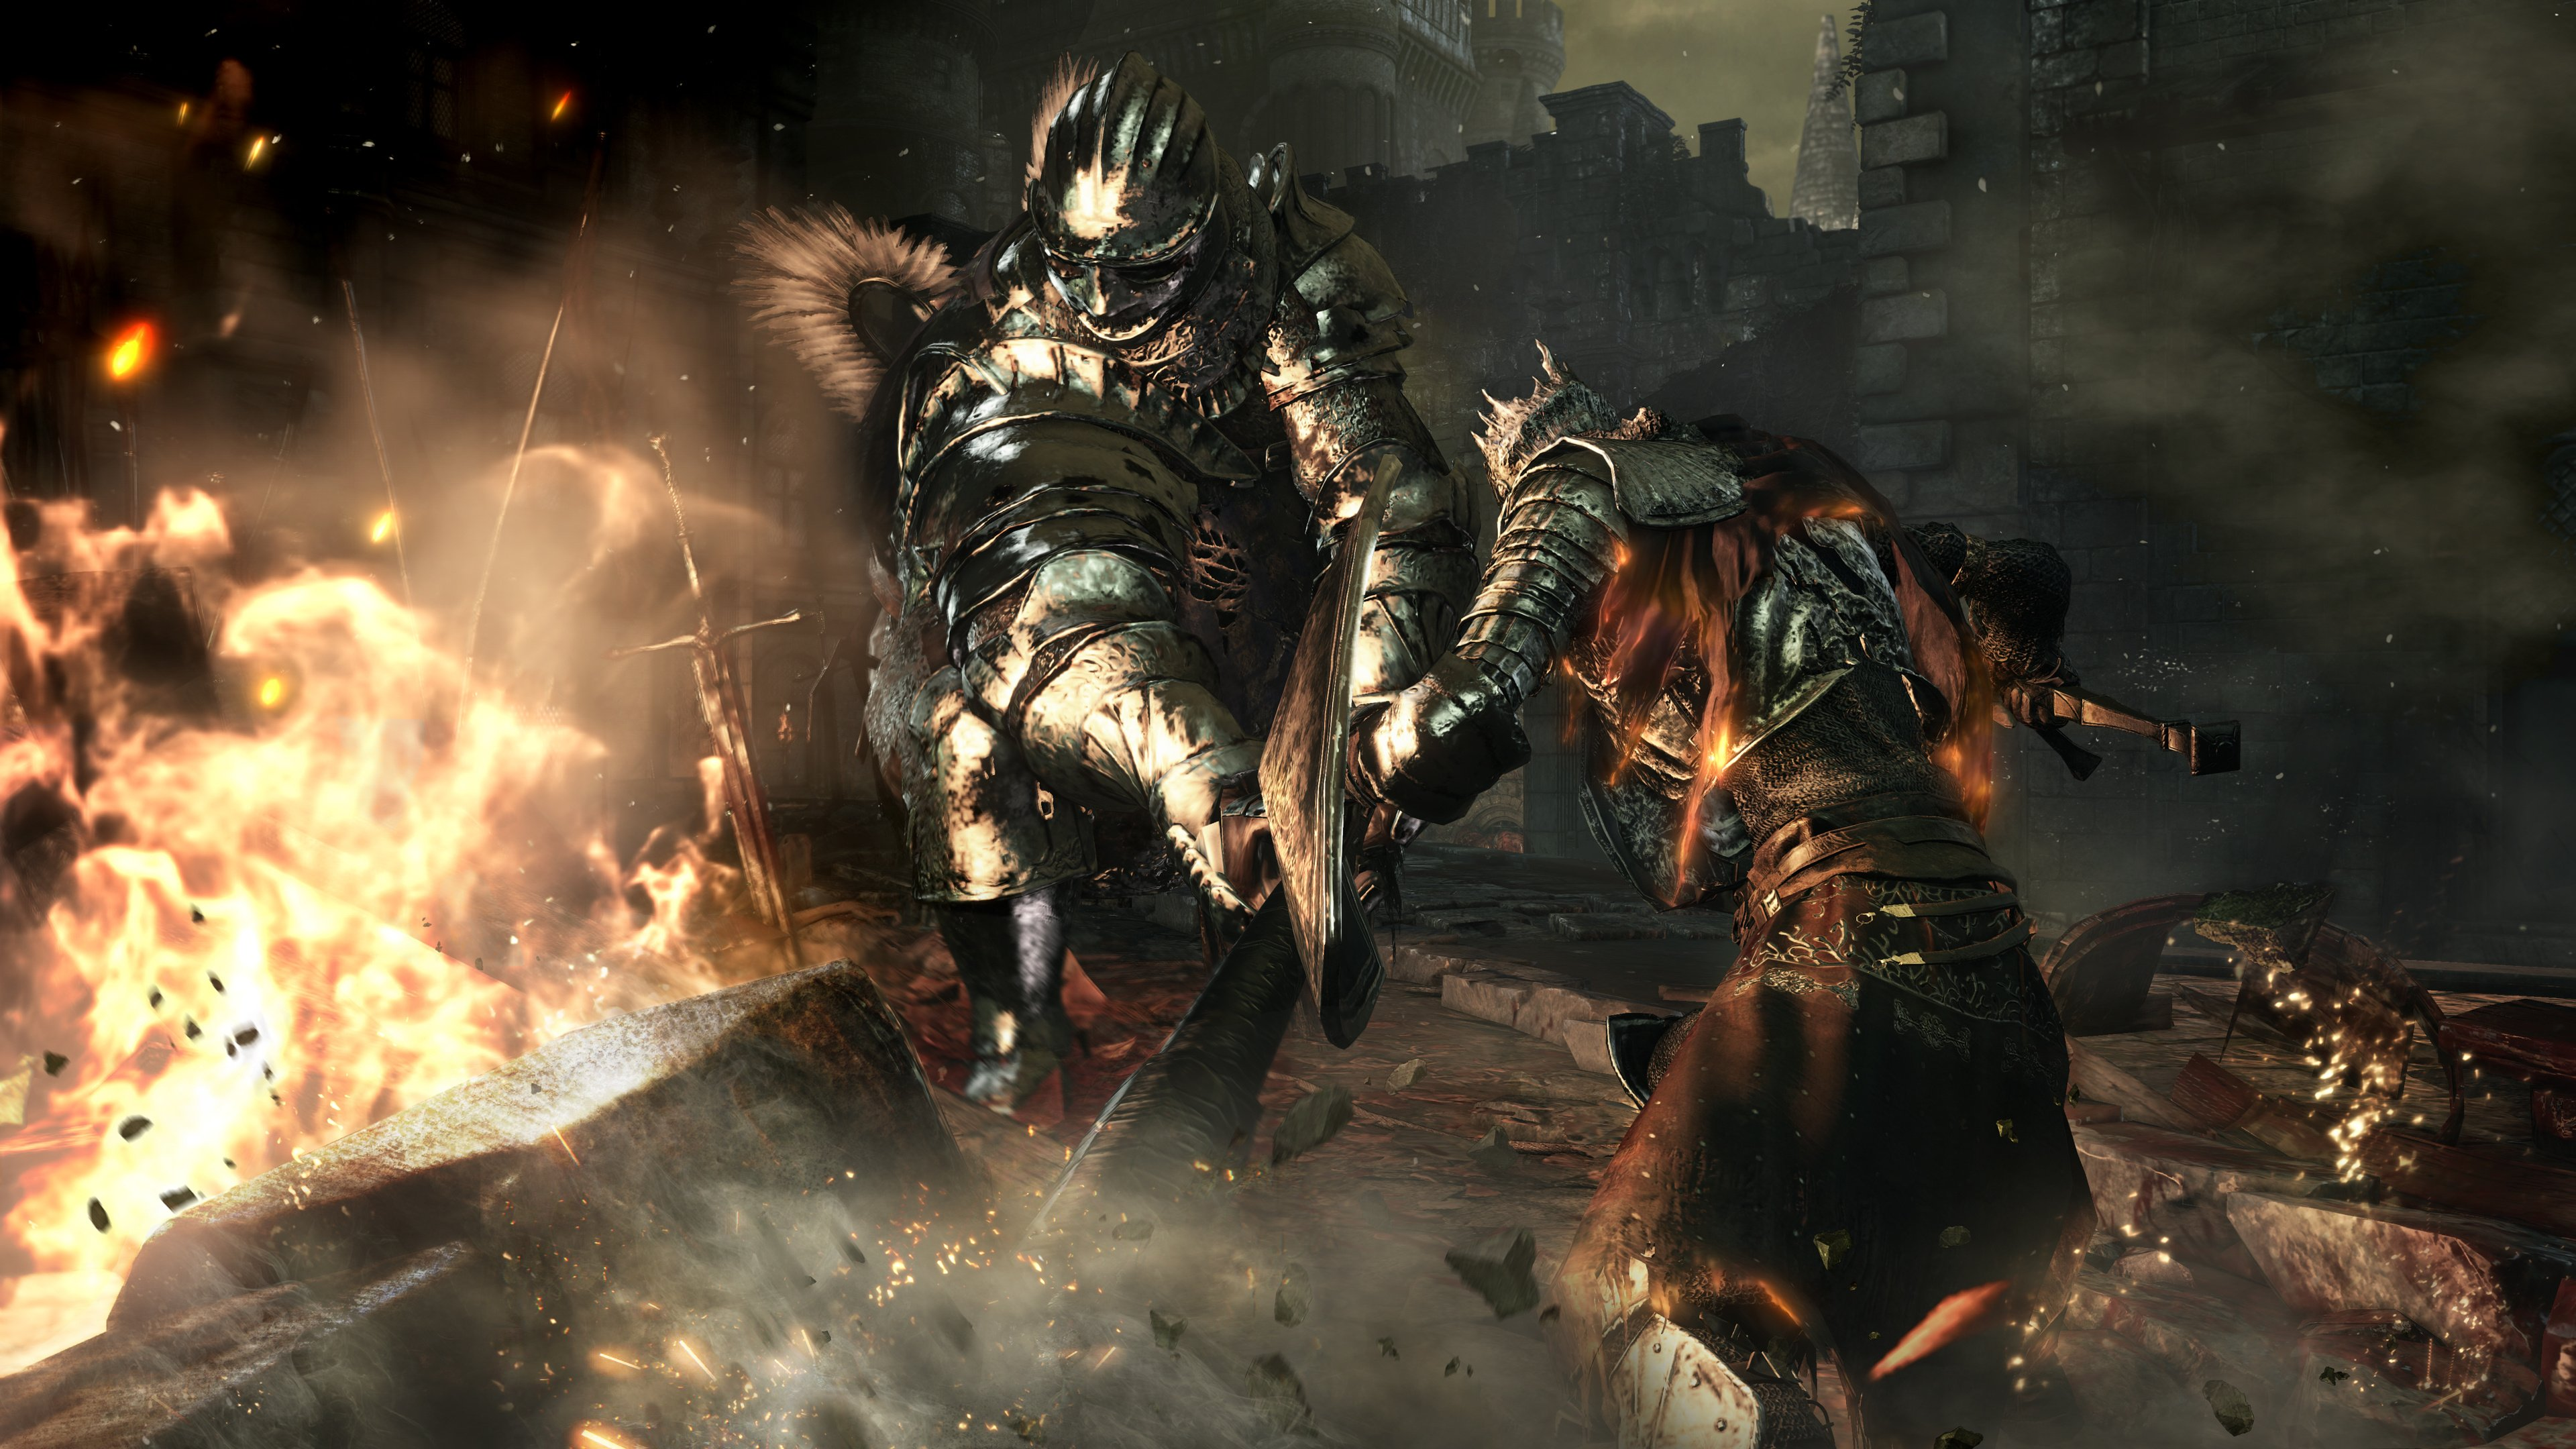 Dark Souls III Has Been Outed And Its Heading To PlayStation 4 Next Year Weve Already Gifted With The Games First Trailer Earlier Today